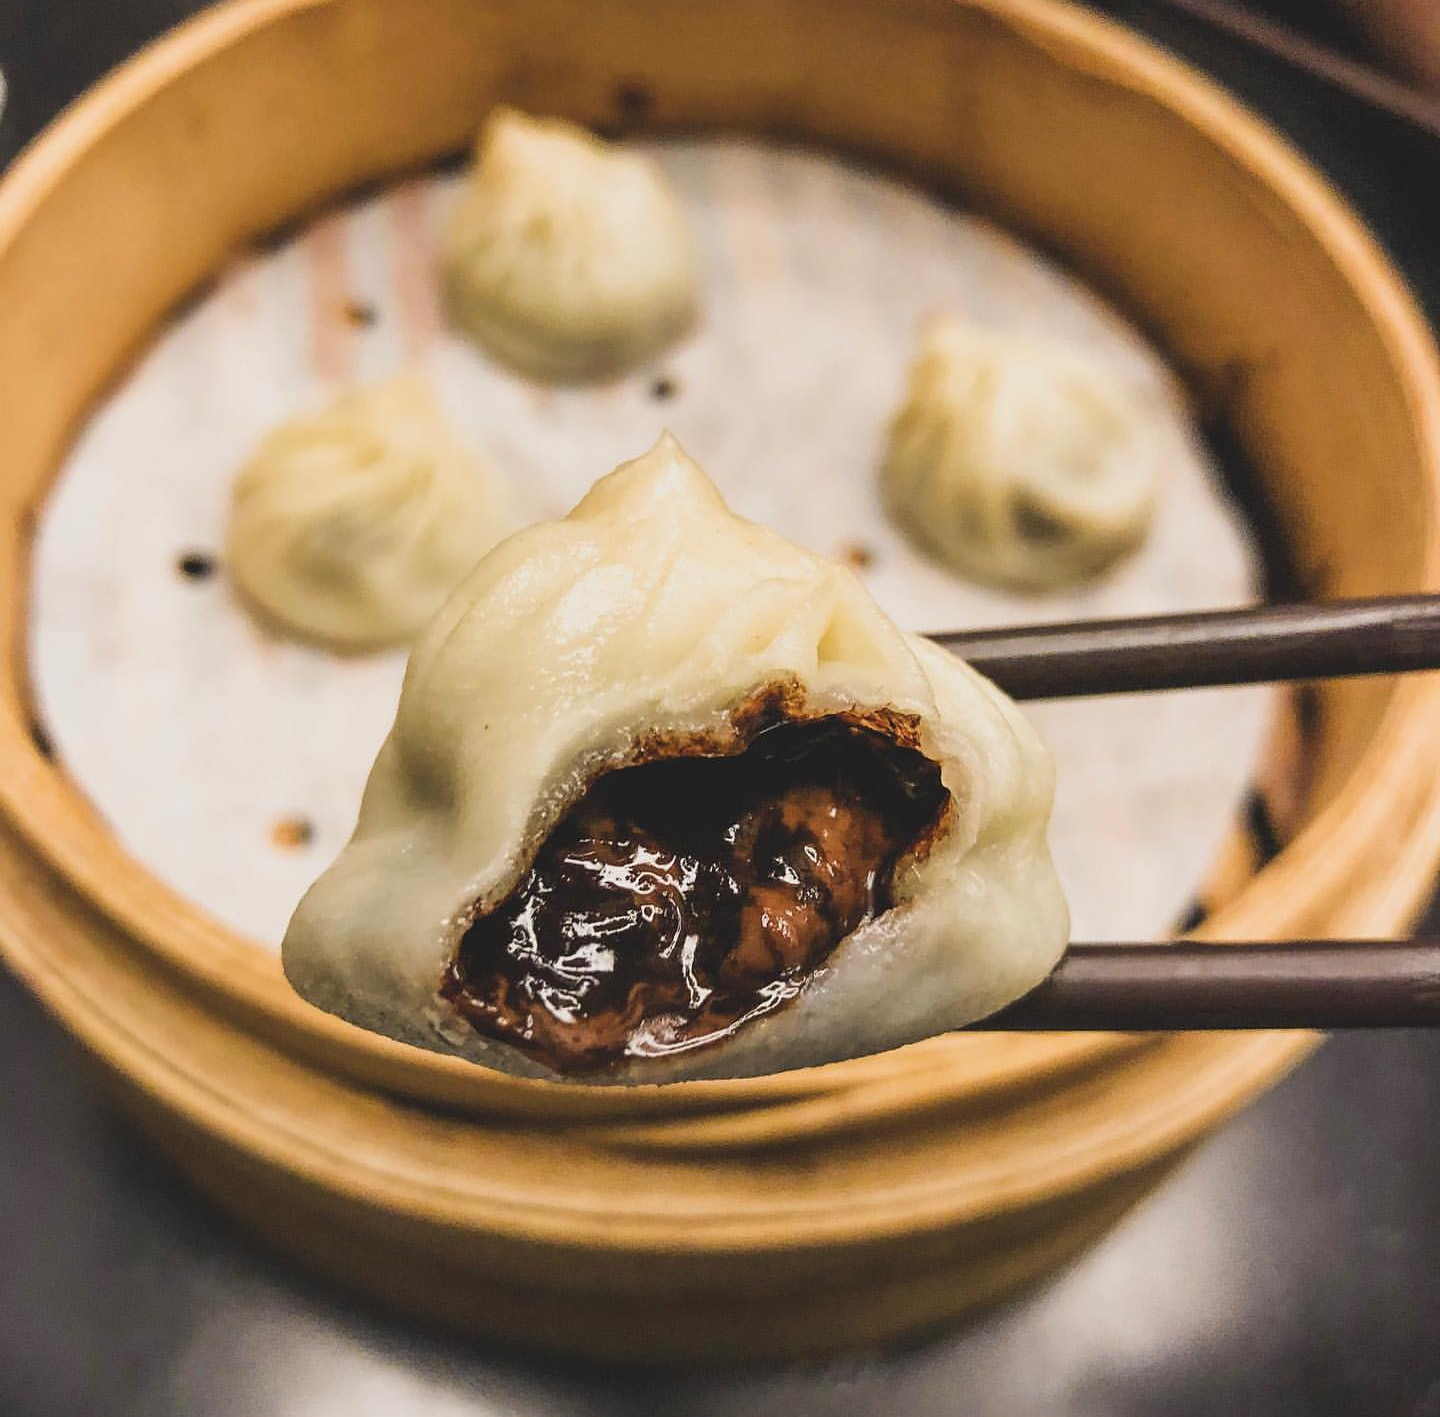 Din Tai Fung in Portland serves one of the restaurant's best known dessert items: the chocolate mochi xiaolongbao.